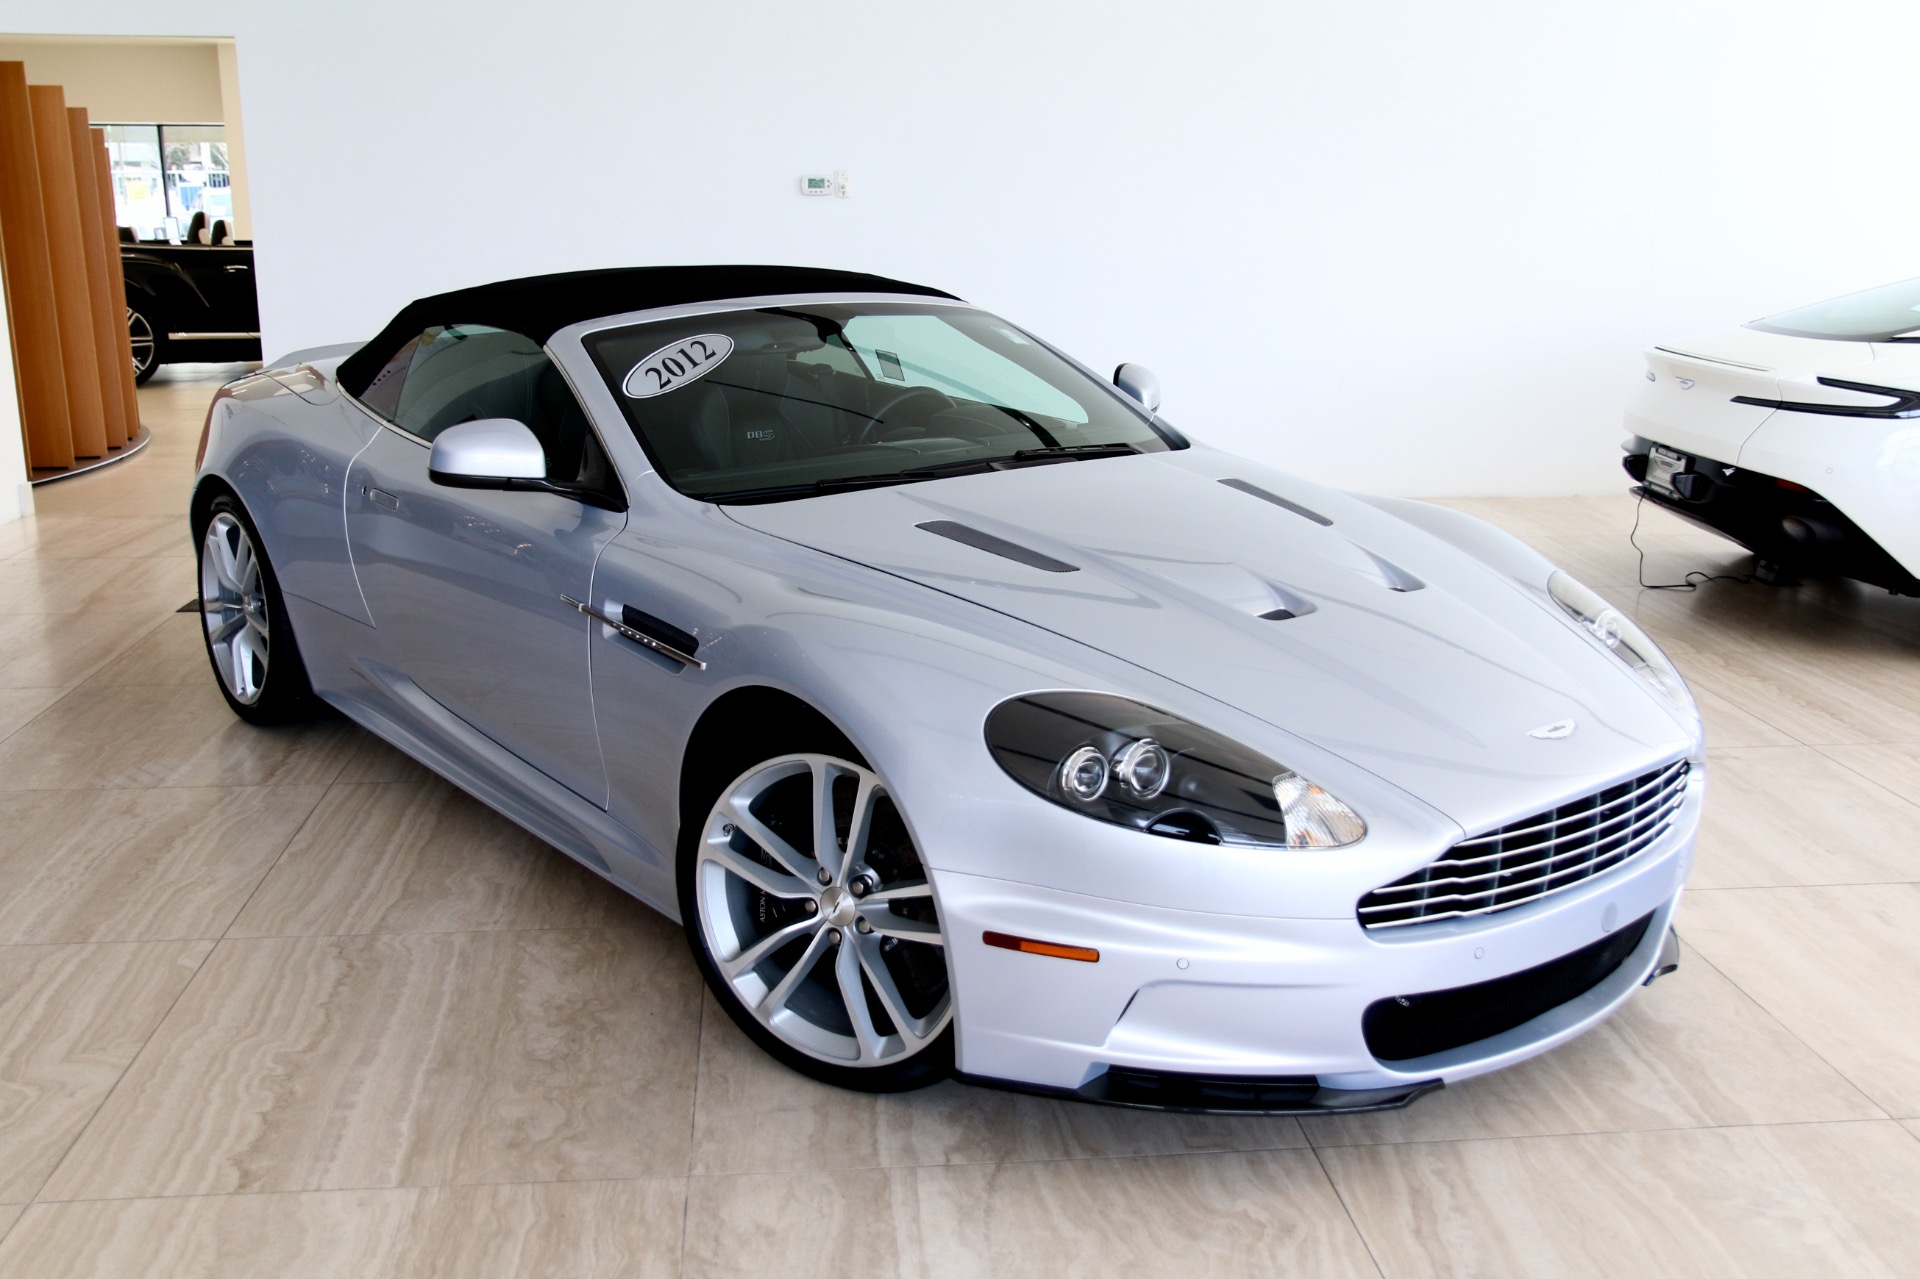 2012 aston martin dbs volante stock pe12909 for sale near vienna va va aston martin dealer. Black Bedroom Furniture Sets. Home Design Ideas